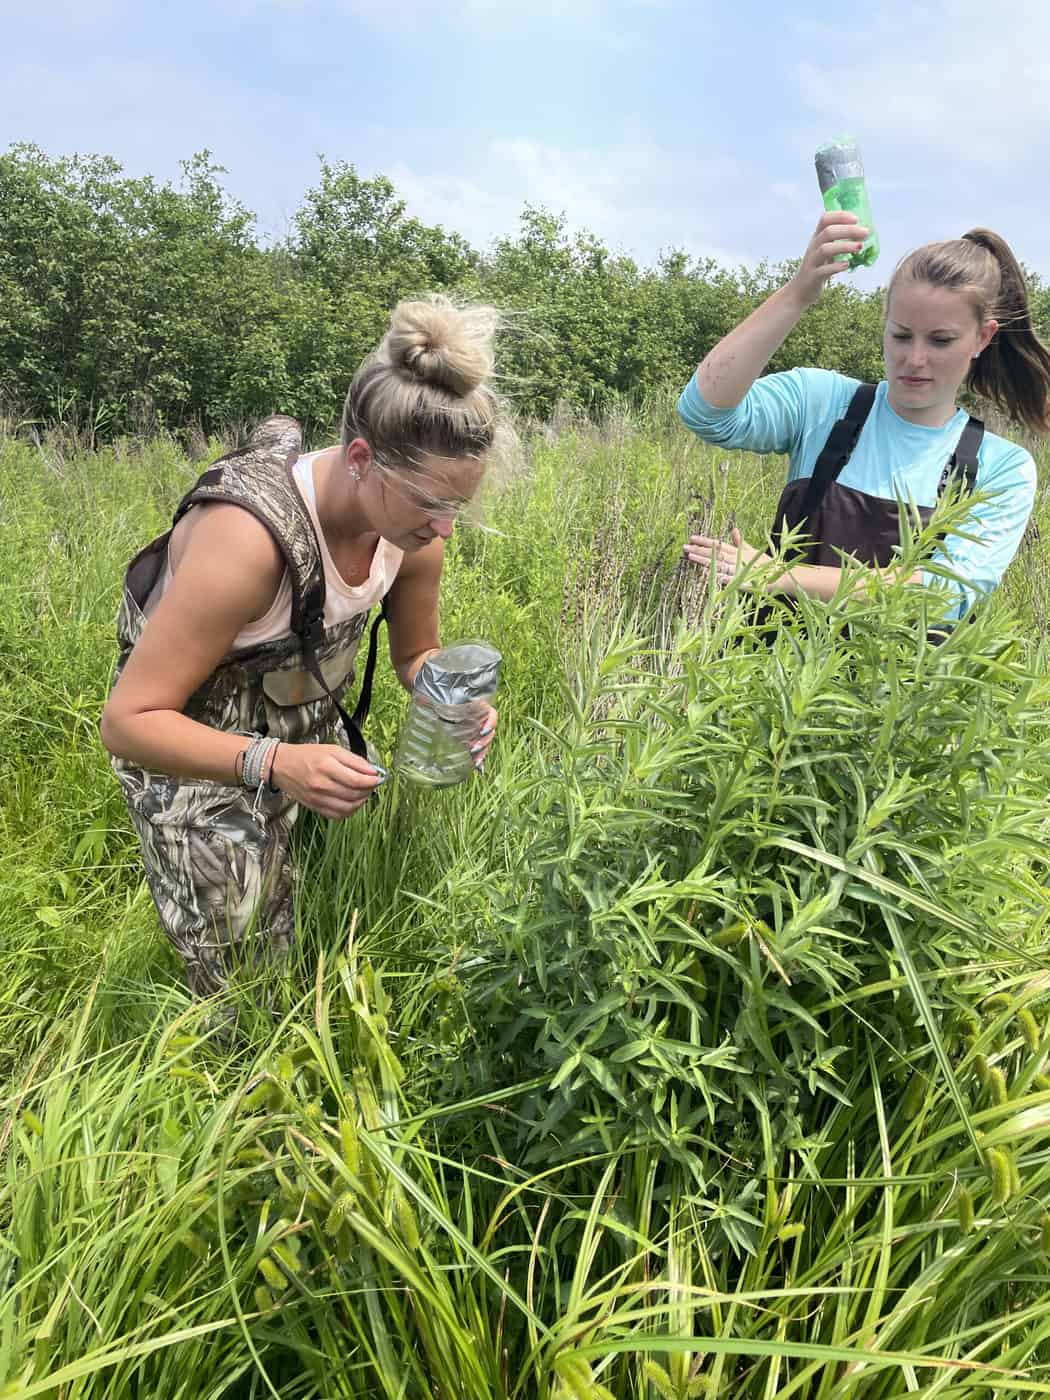 Two young woman stand behind a plant and gather beetles. Photo by Katie Sickmann